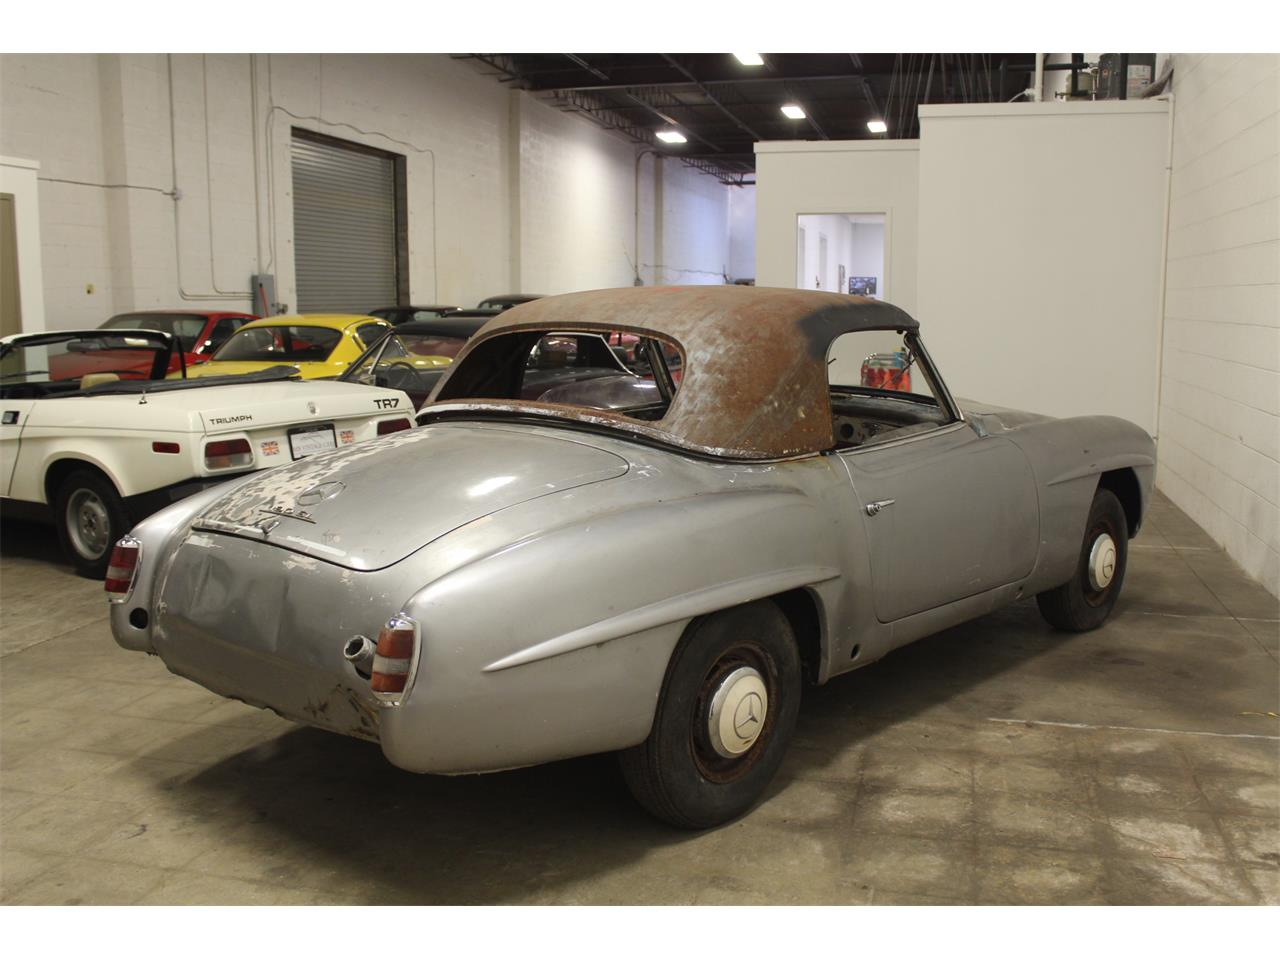 For Sale: 1959 Mercedes-Benz 190SL in Cleveland, Ohio